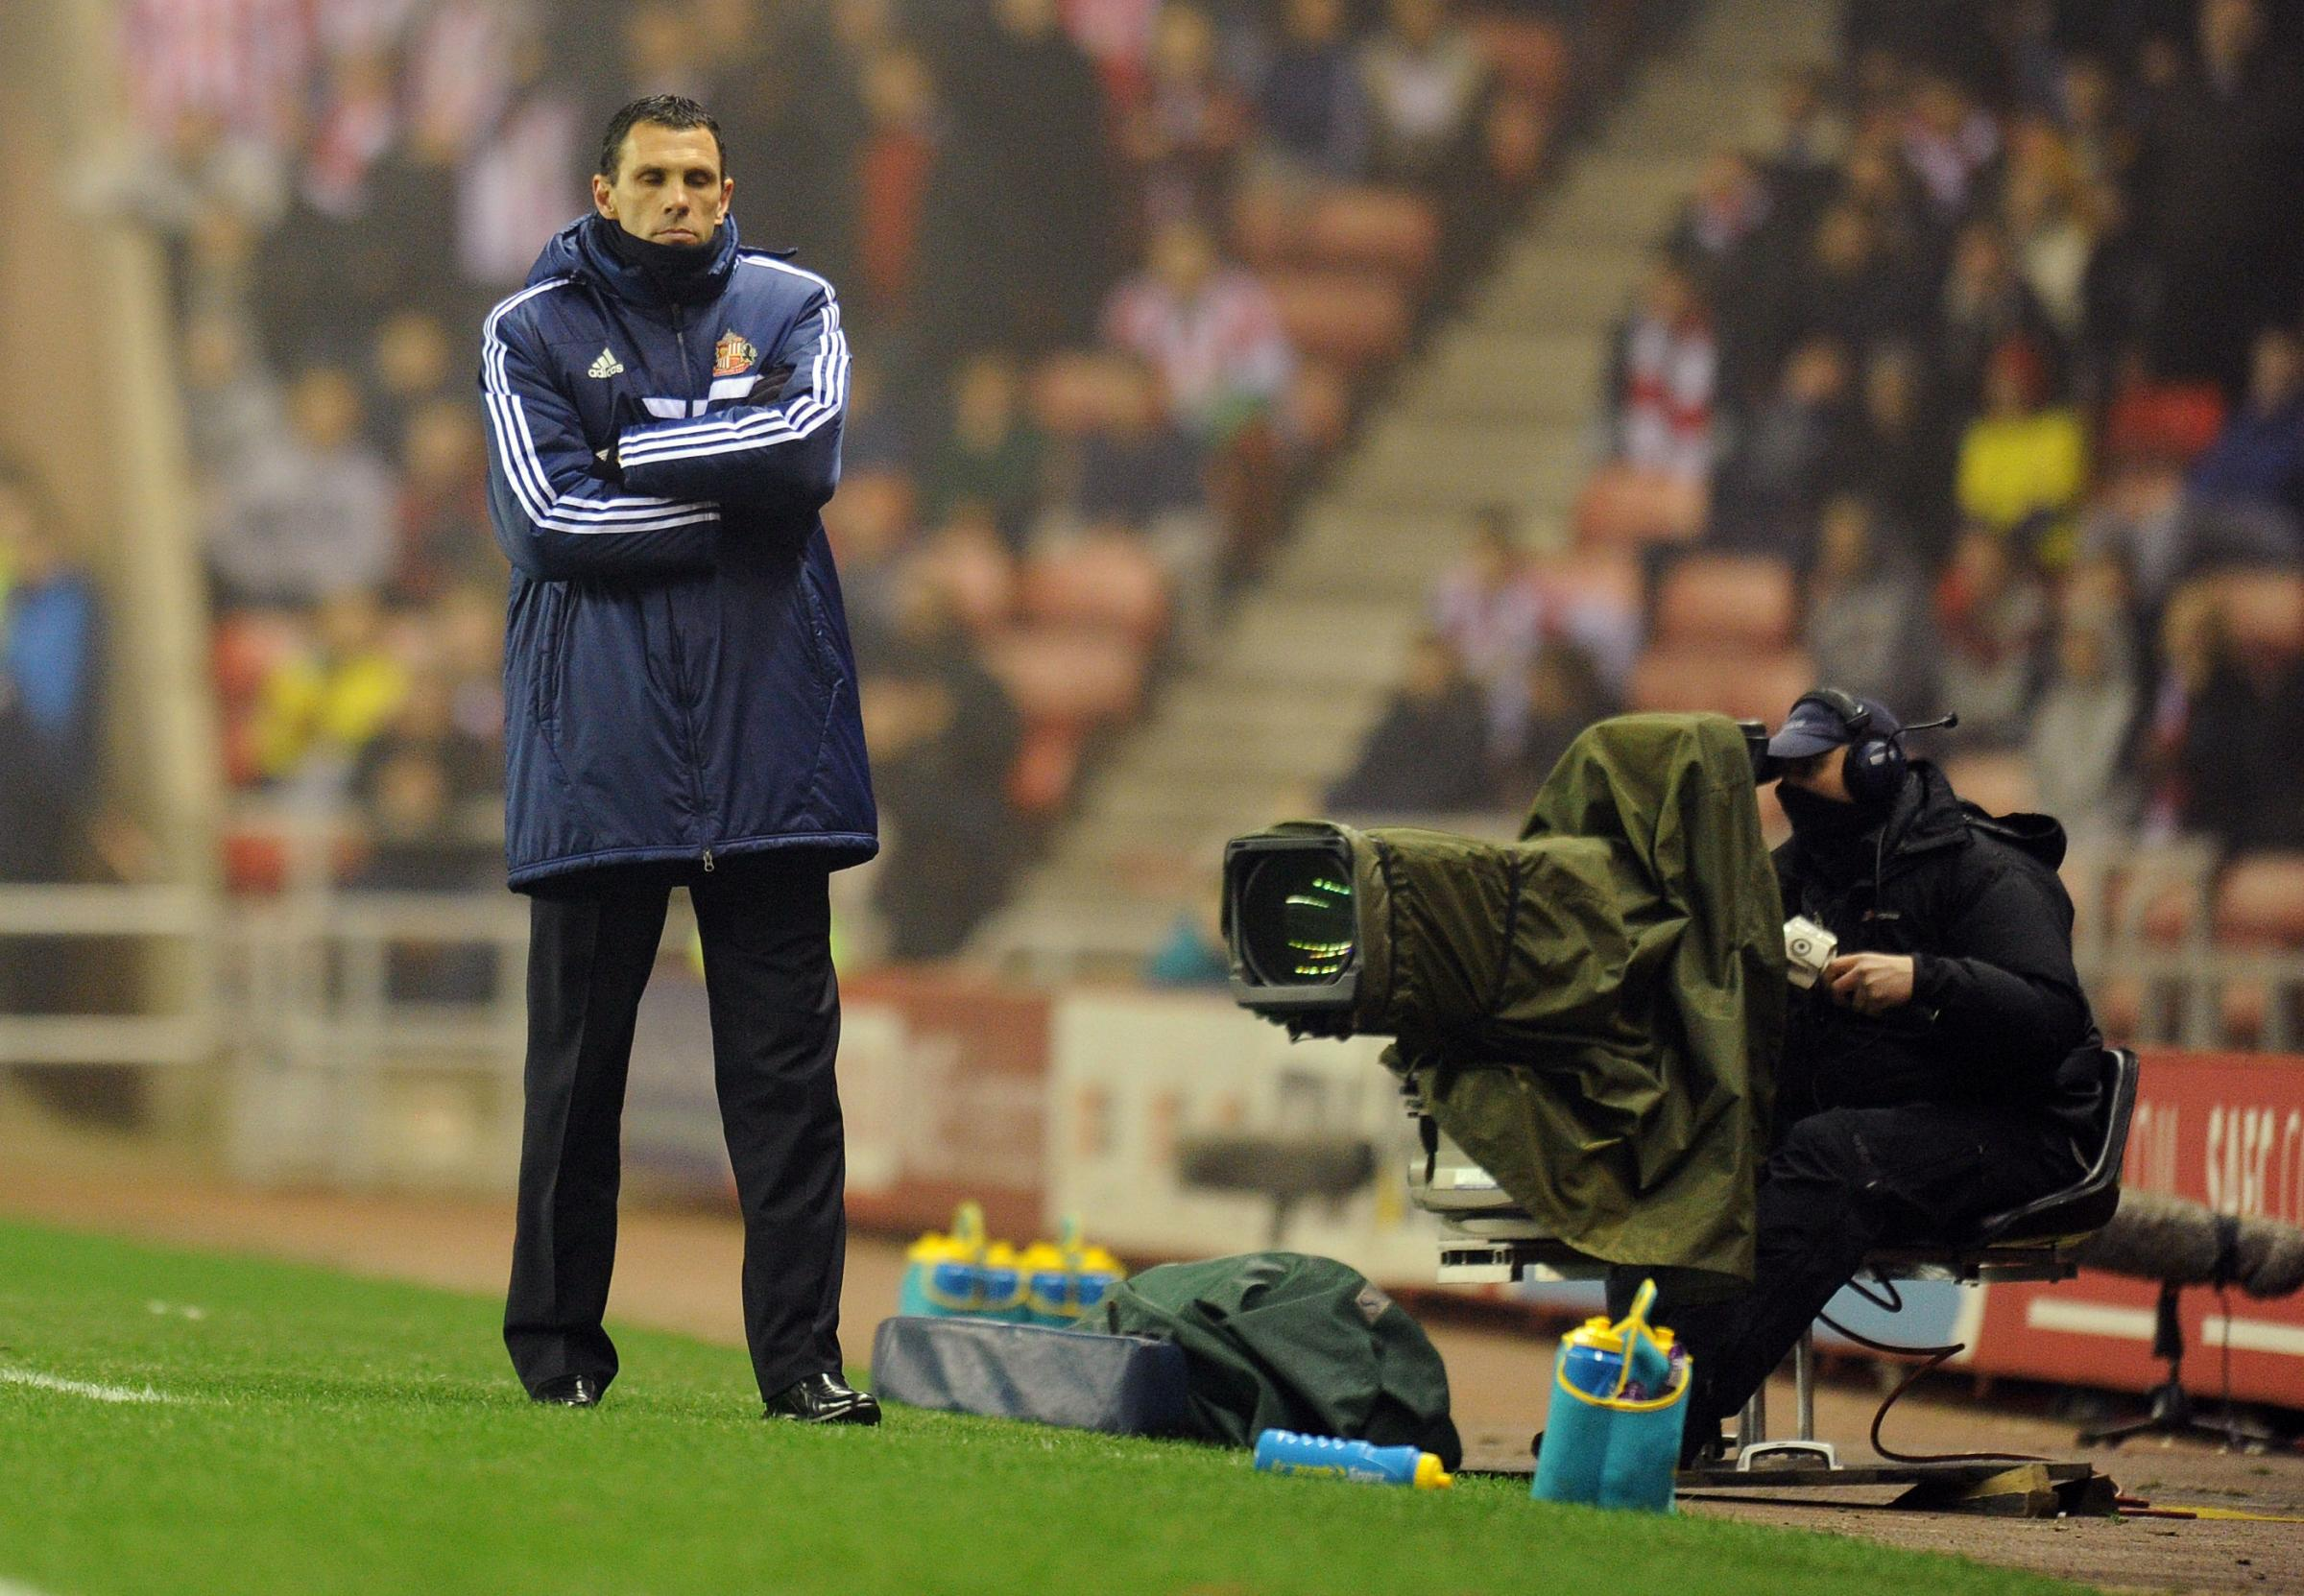 A DECISIVE NIGHT: Gus Poyet, the Sunderland boss, reflects in the technical area during last night's disappointing defeat to West Ham United